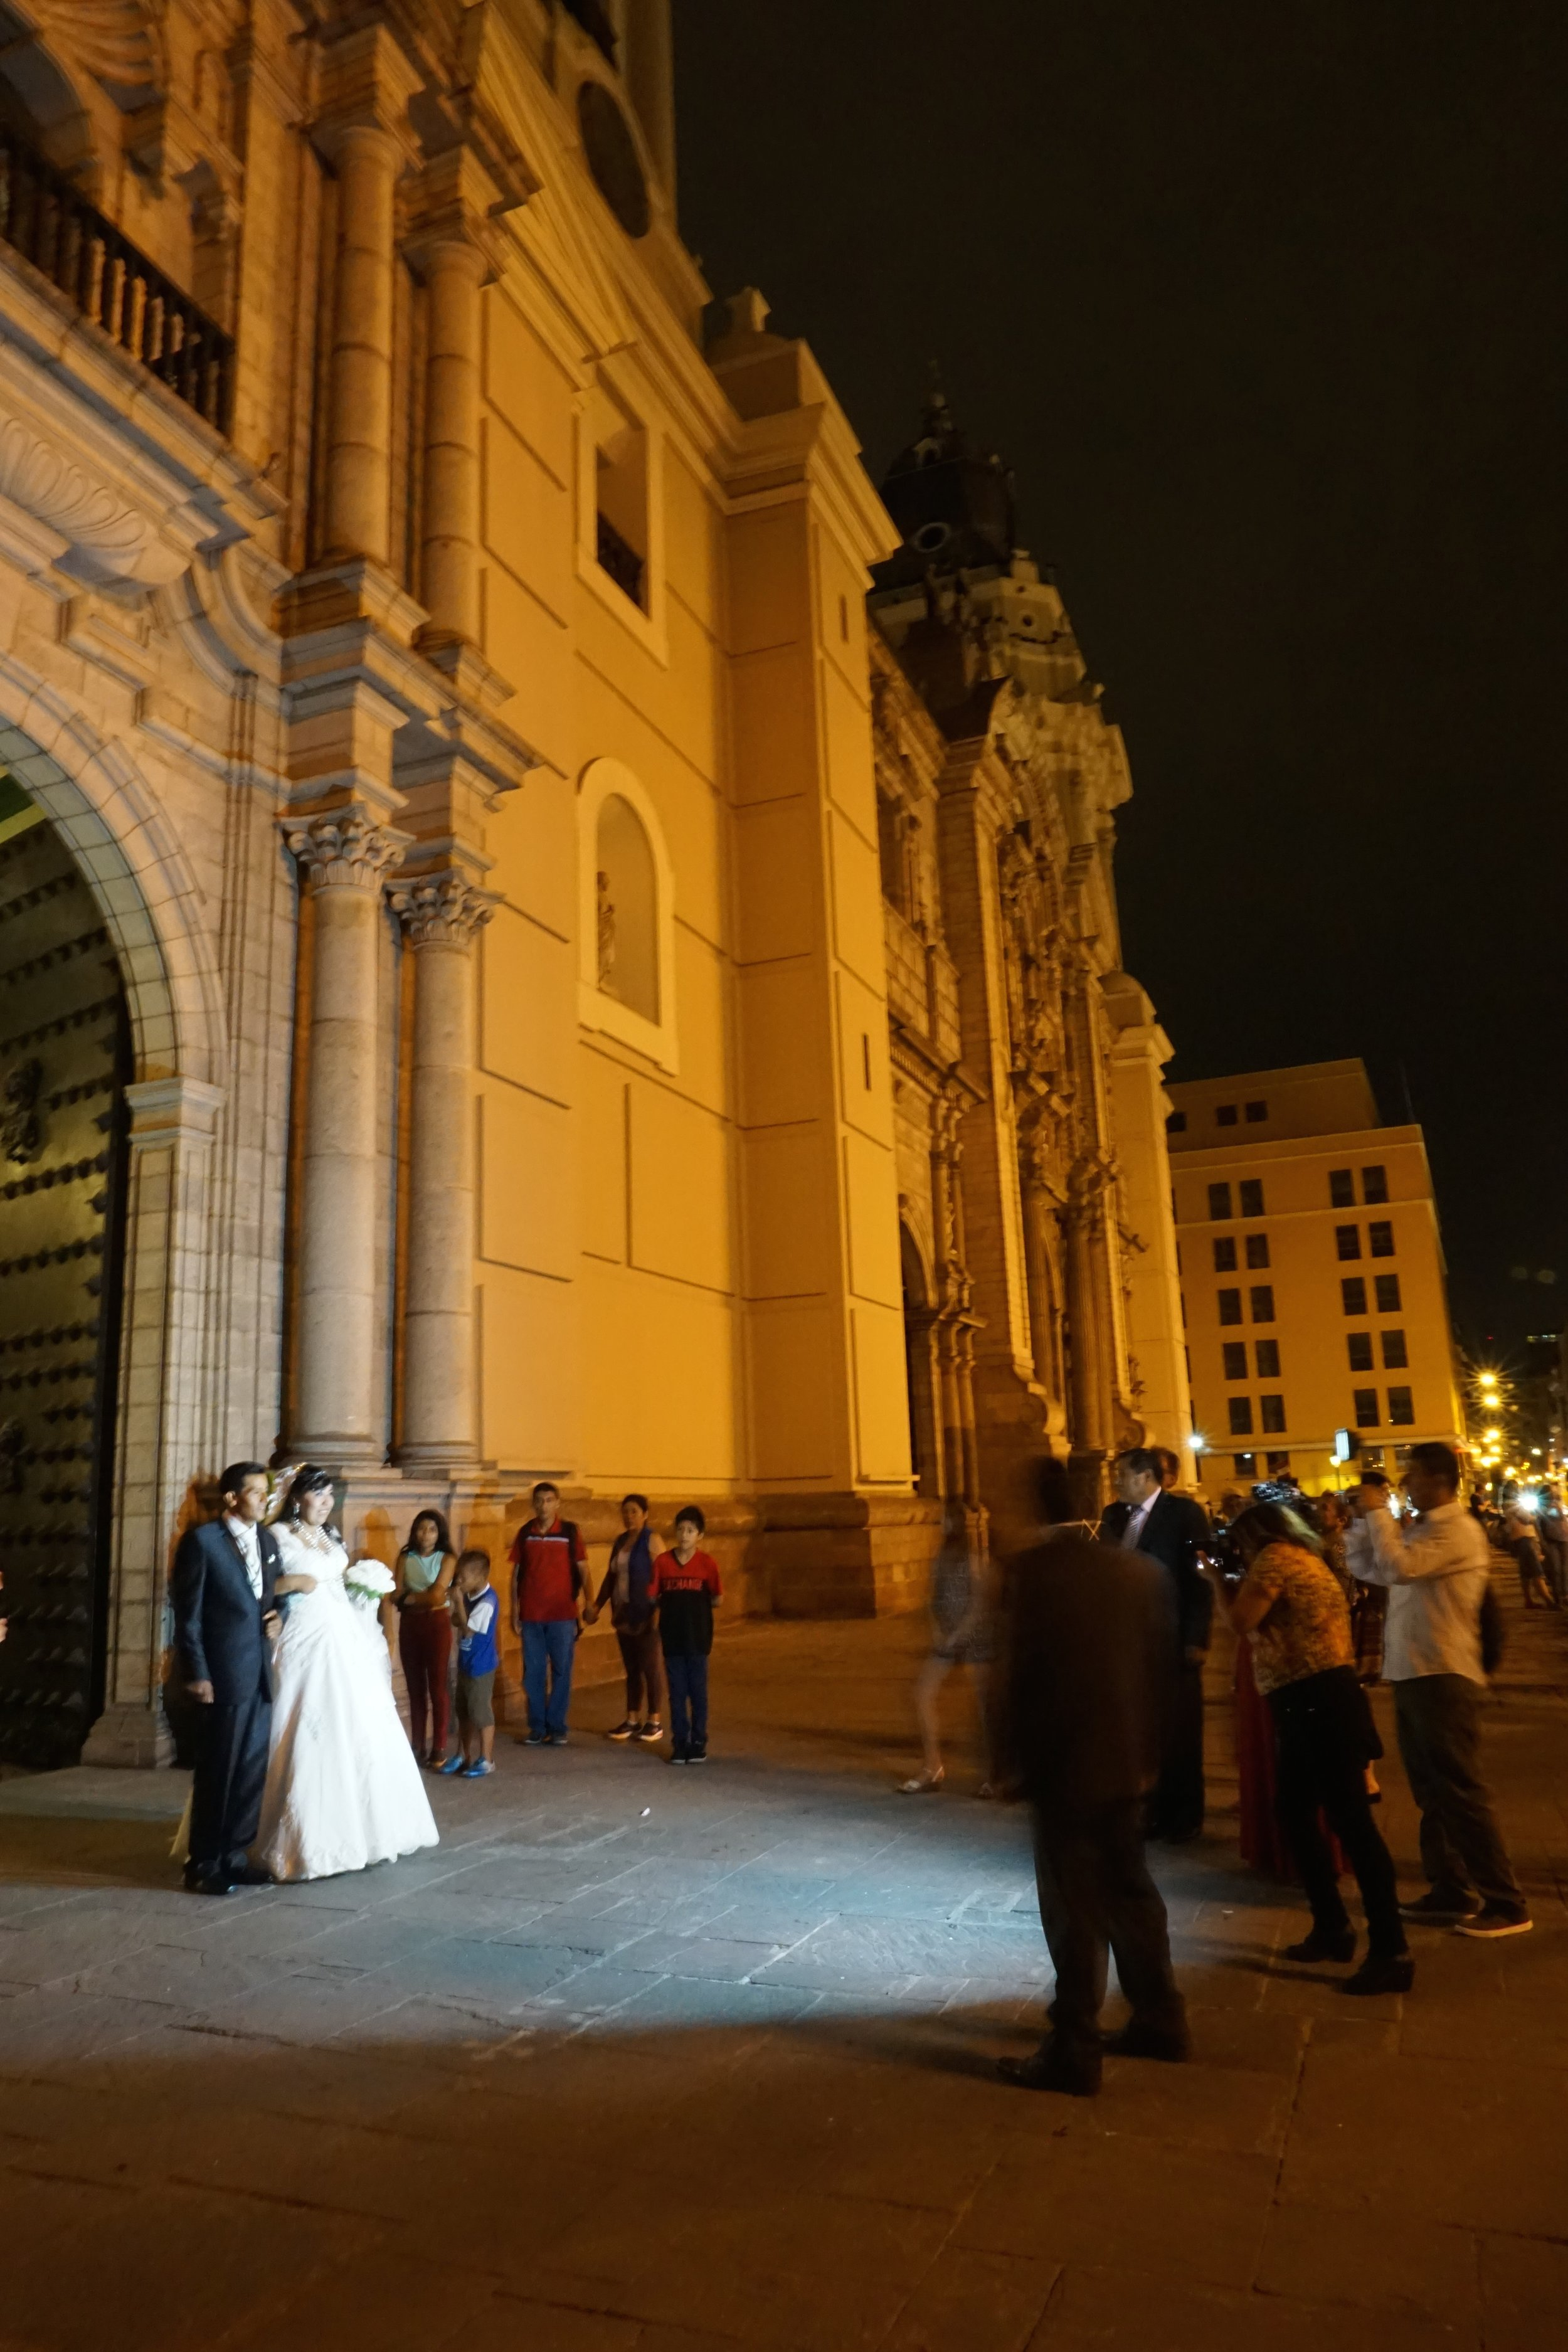 One of the many weddings happening on a weekend evening in Lima's cathedral.